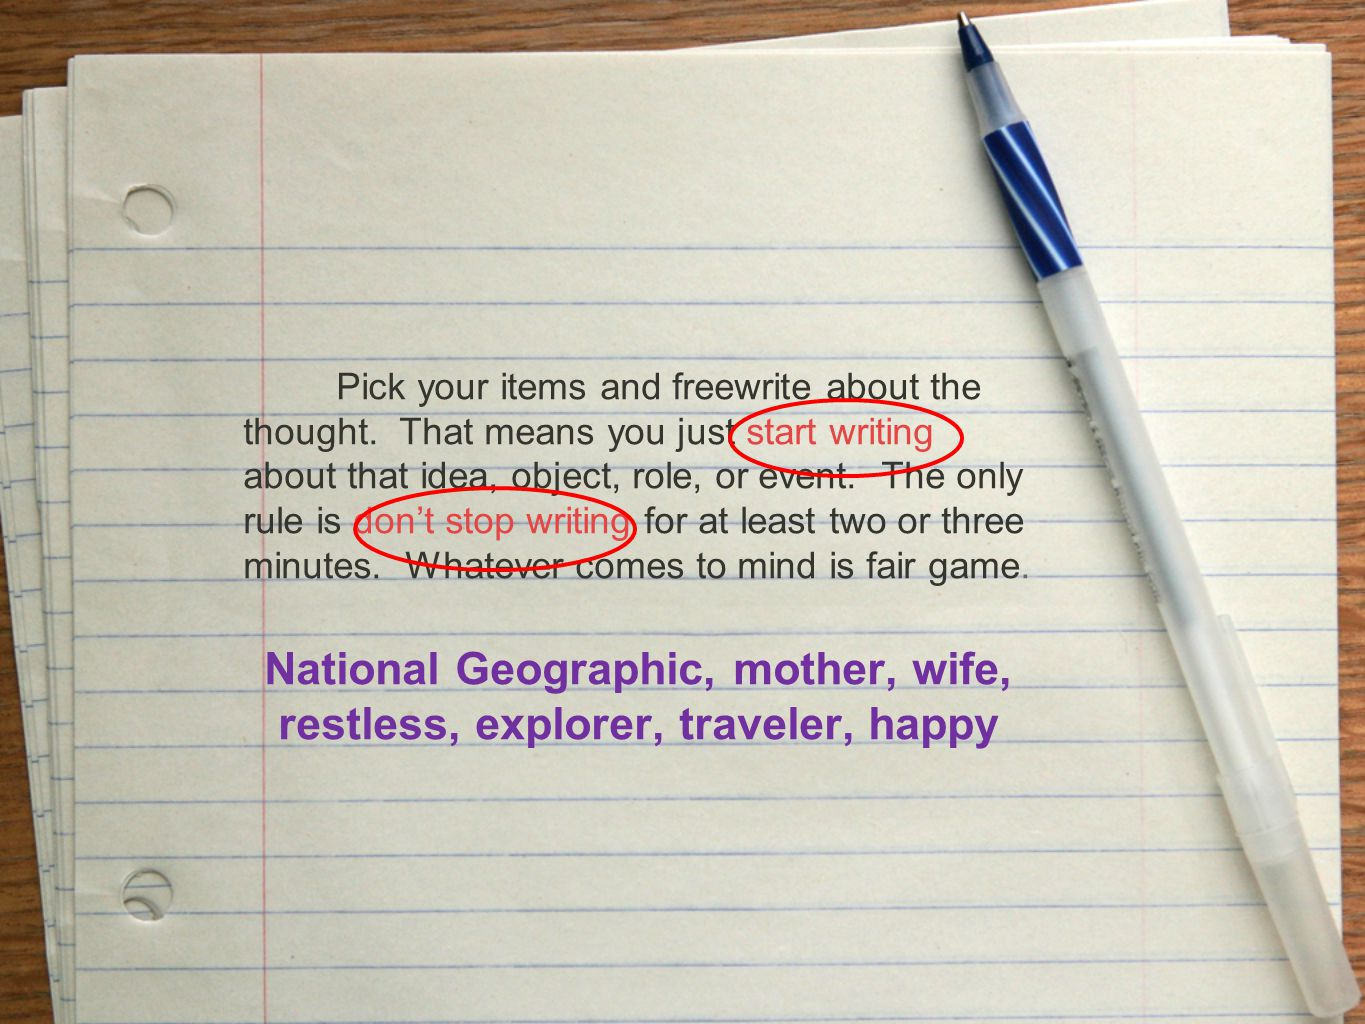 Pick your items and freewrite about the thought.